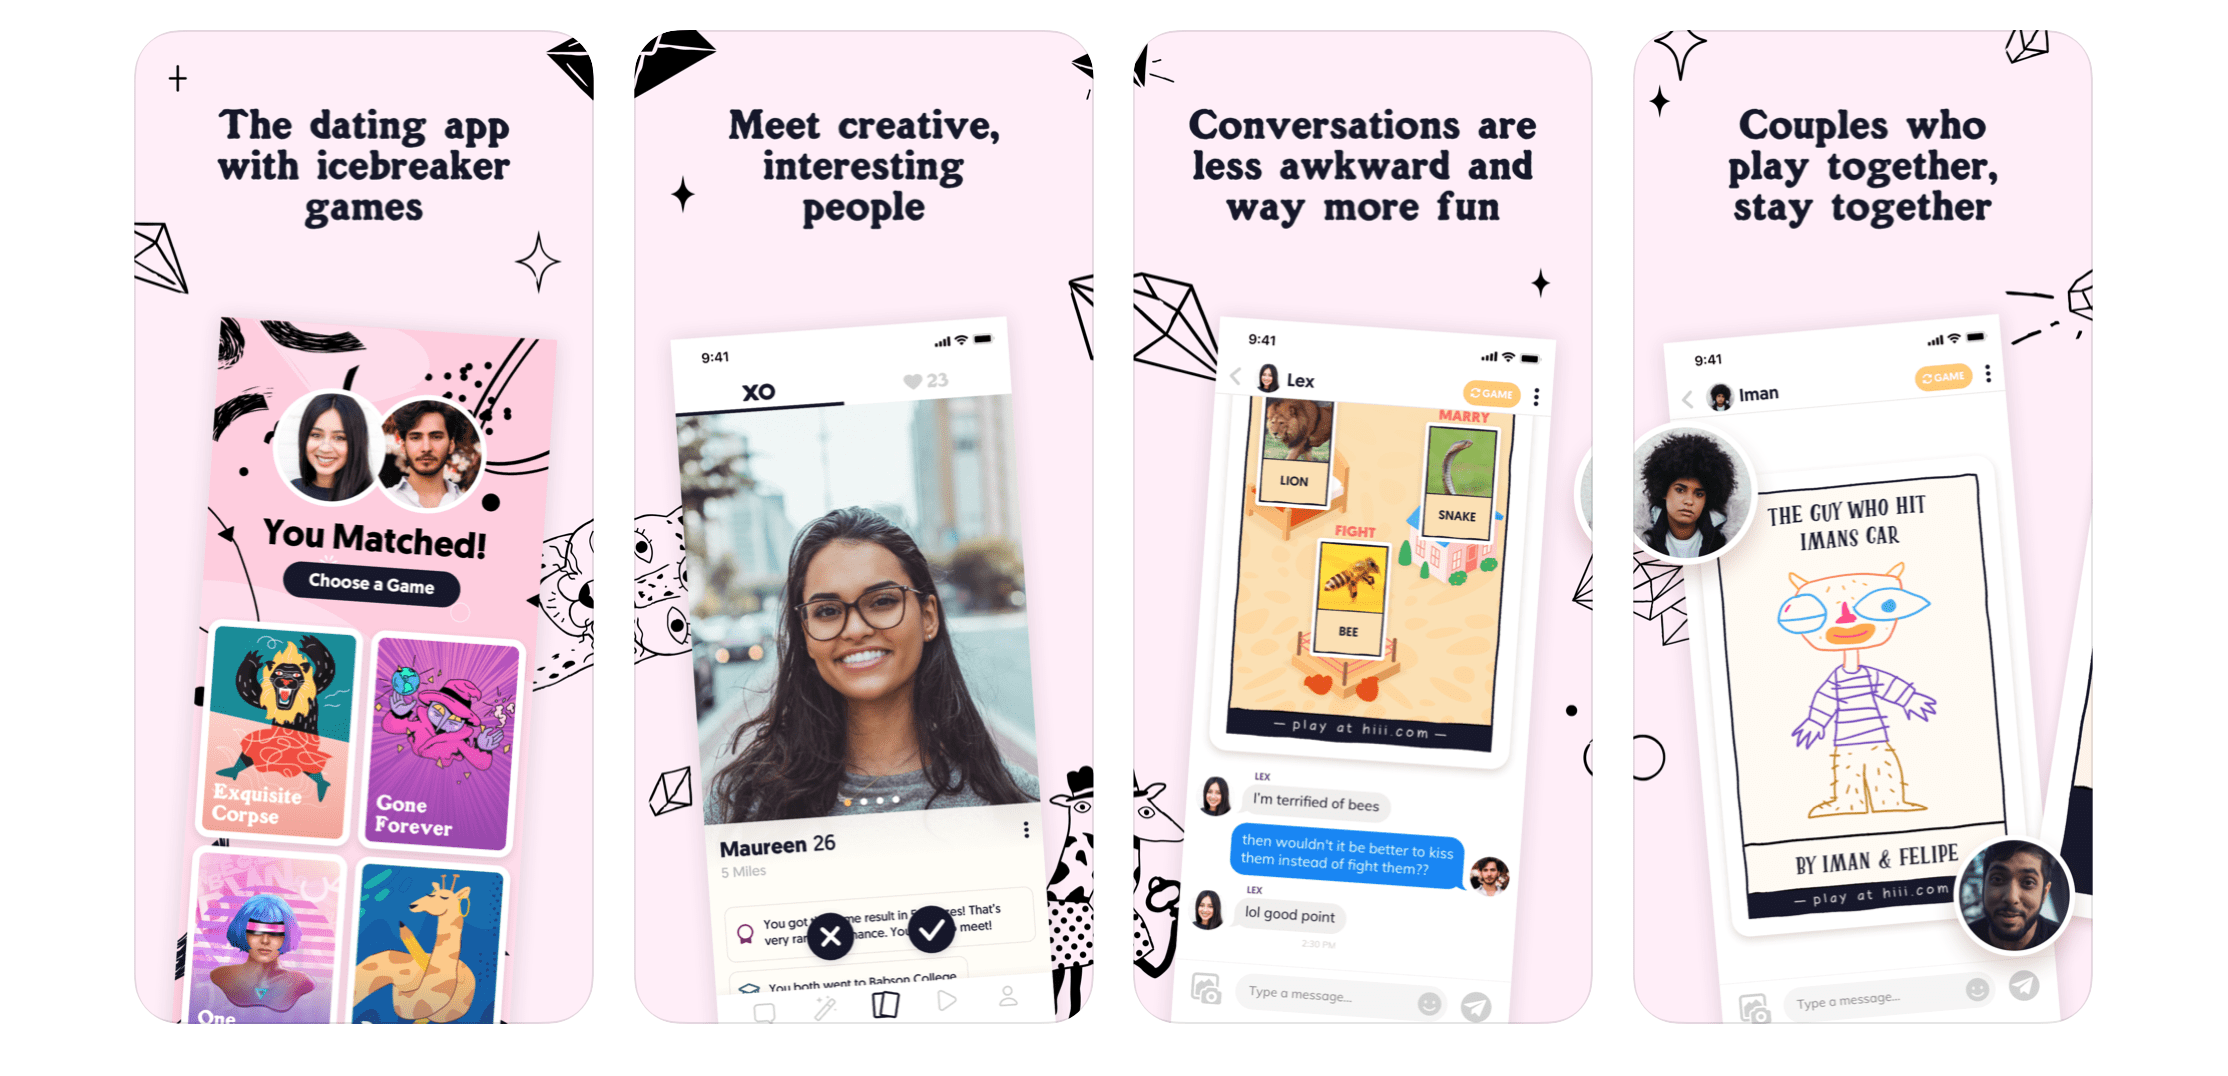 14 Best Dating Apps to Find Your True Soulmate in 2020